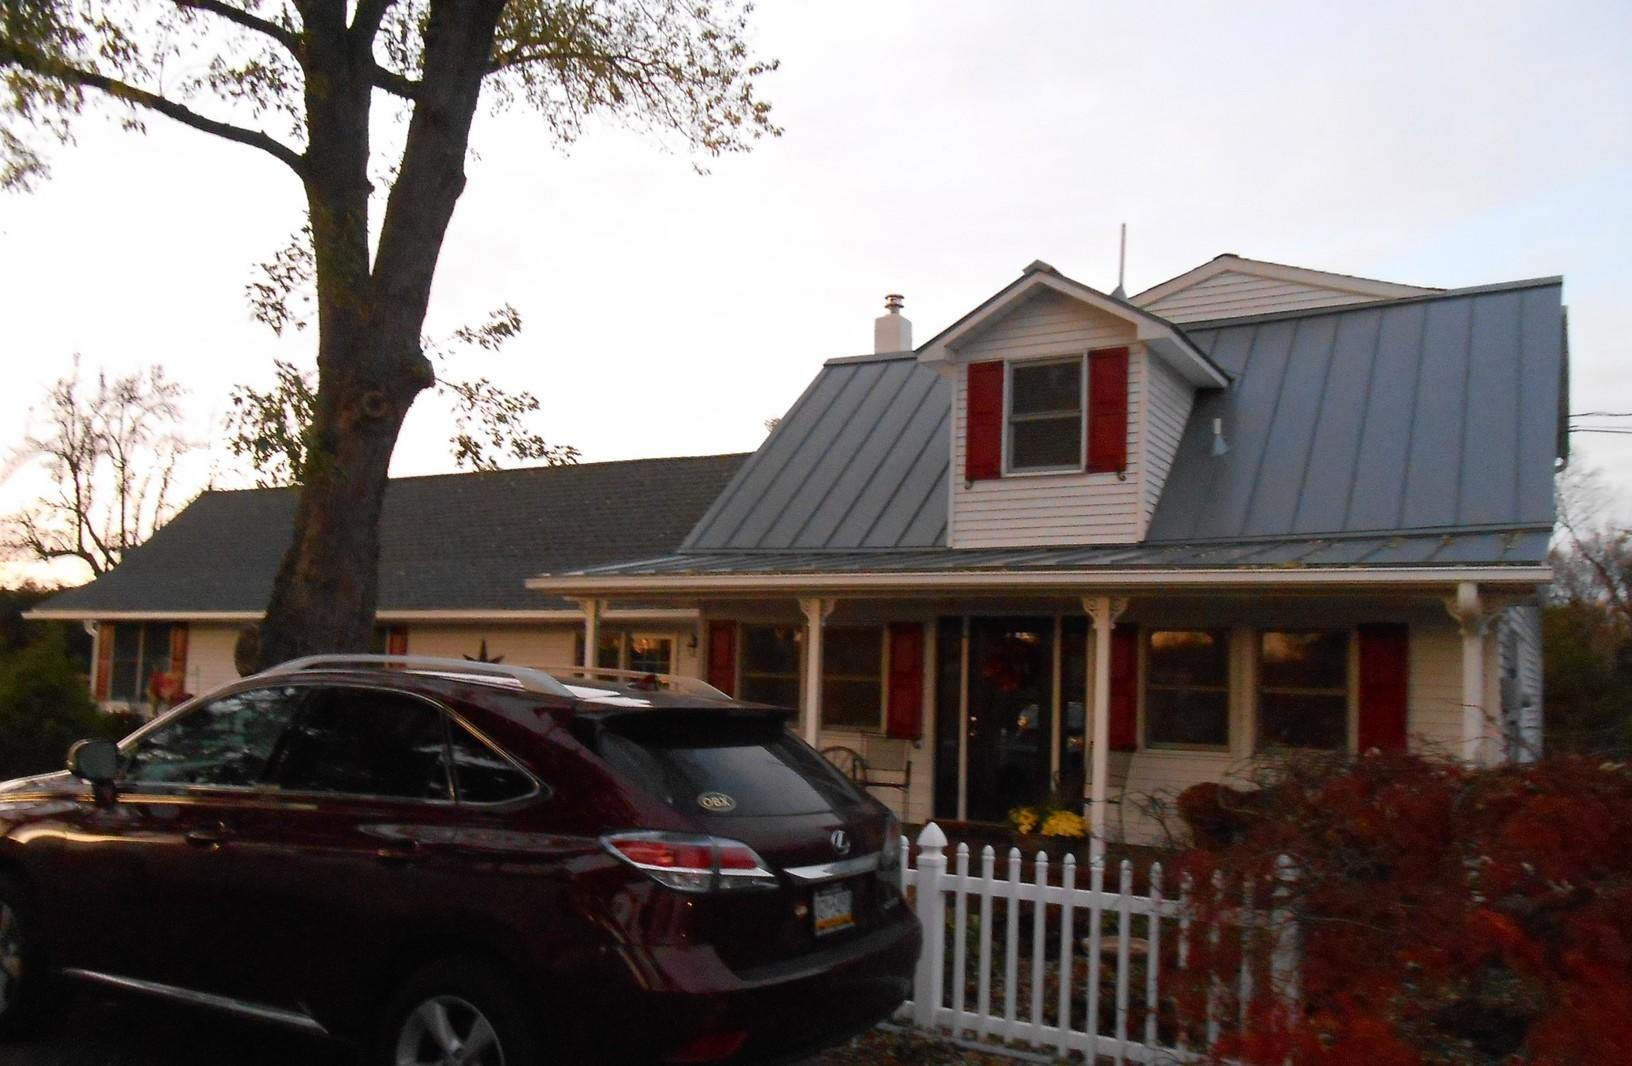 Drexel Preweathered Standing Seam Metal Over Main Home and Porch on Home in New Hope, PA